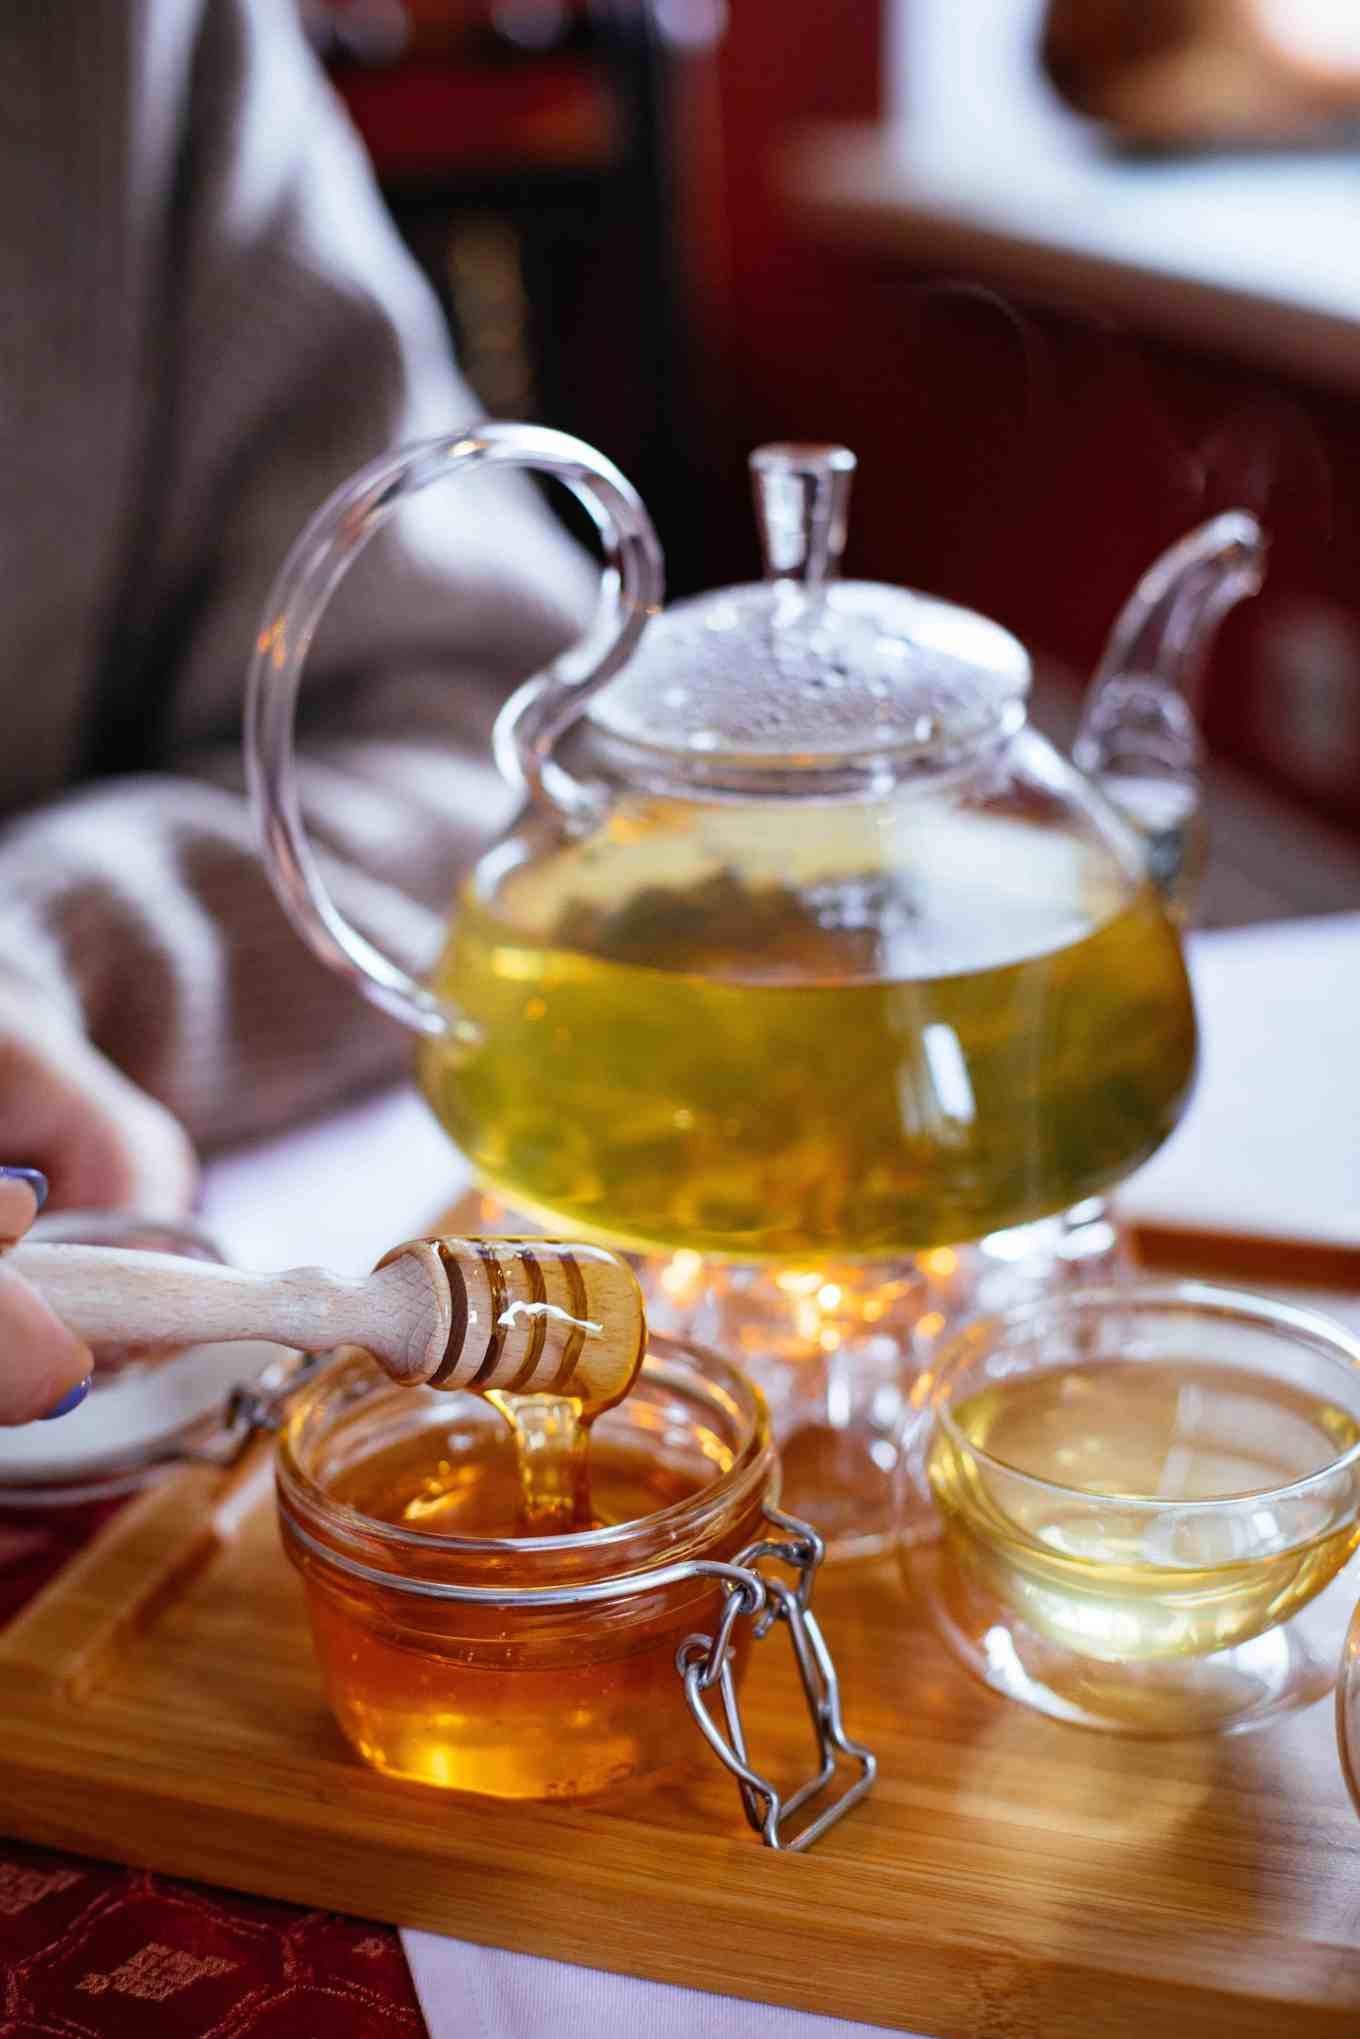 a soothing cup of tea